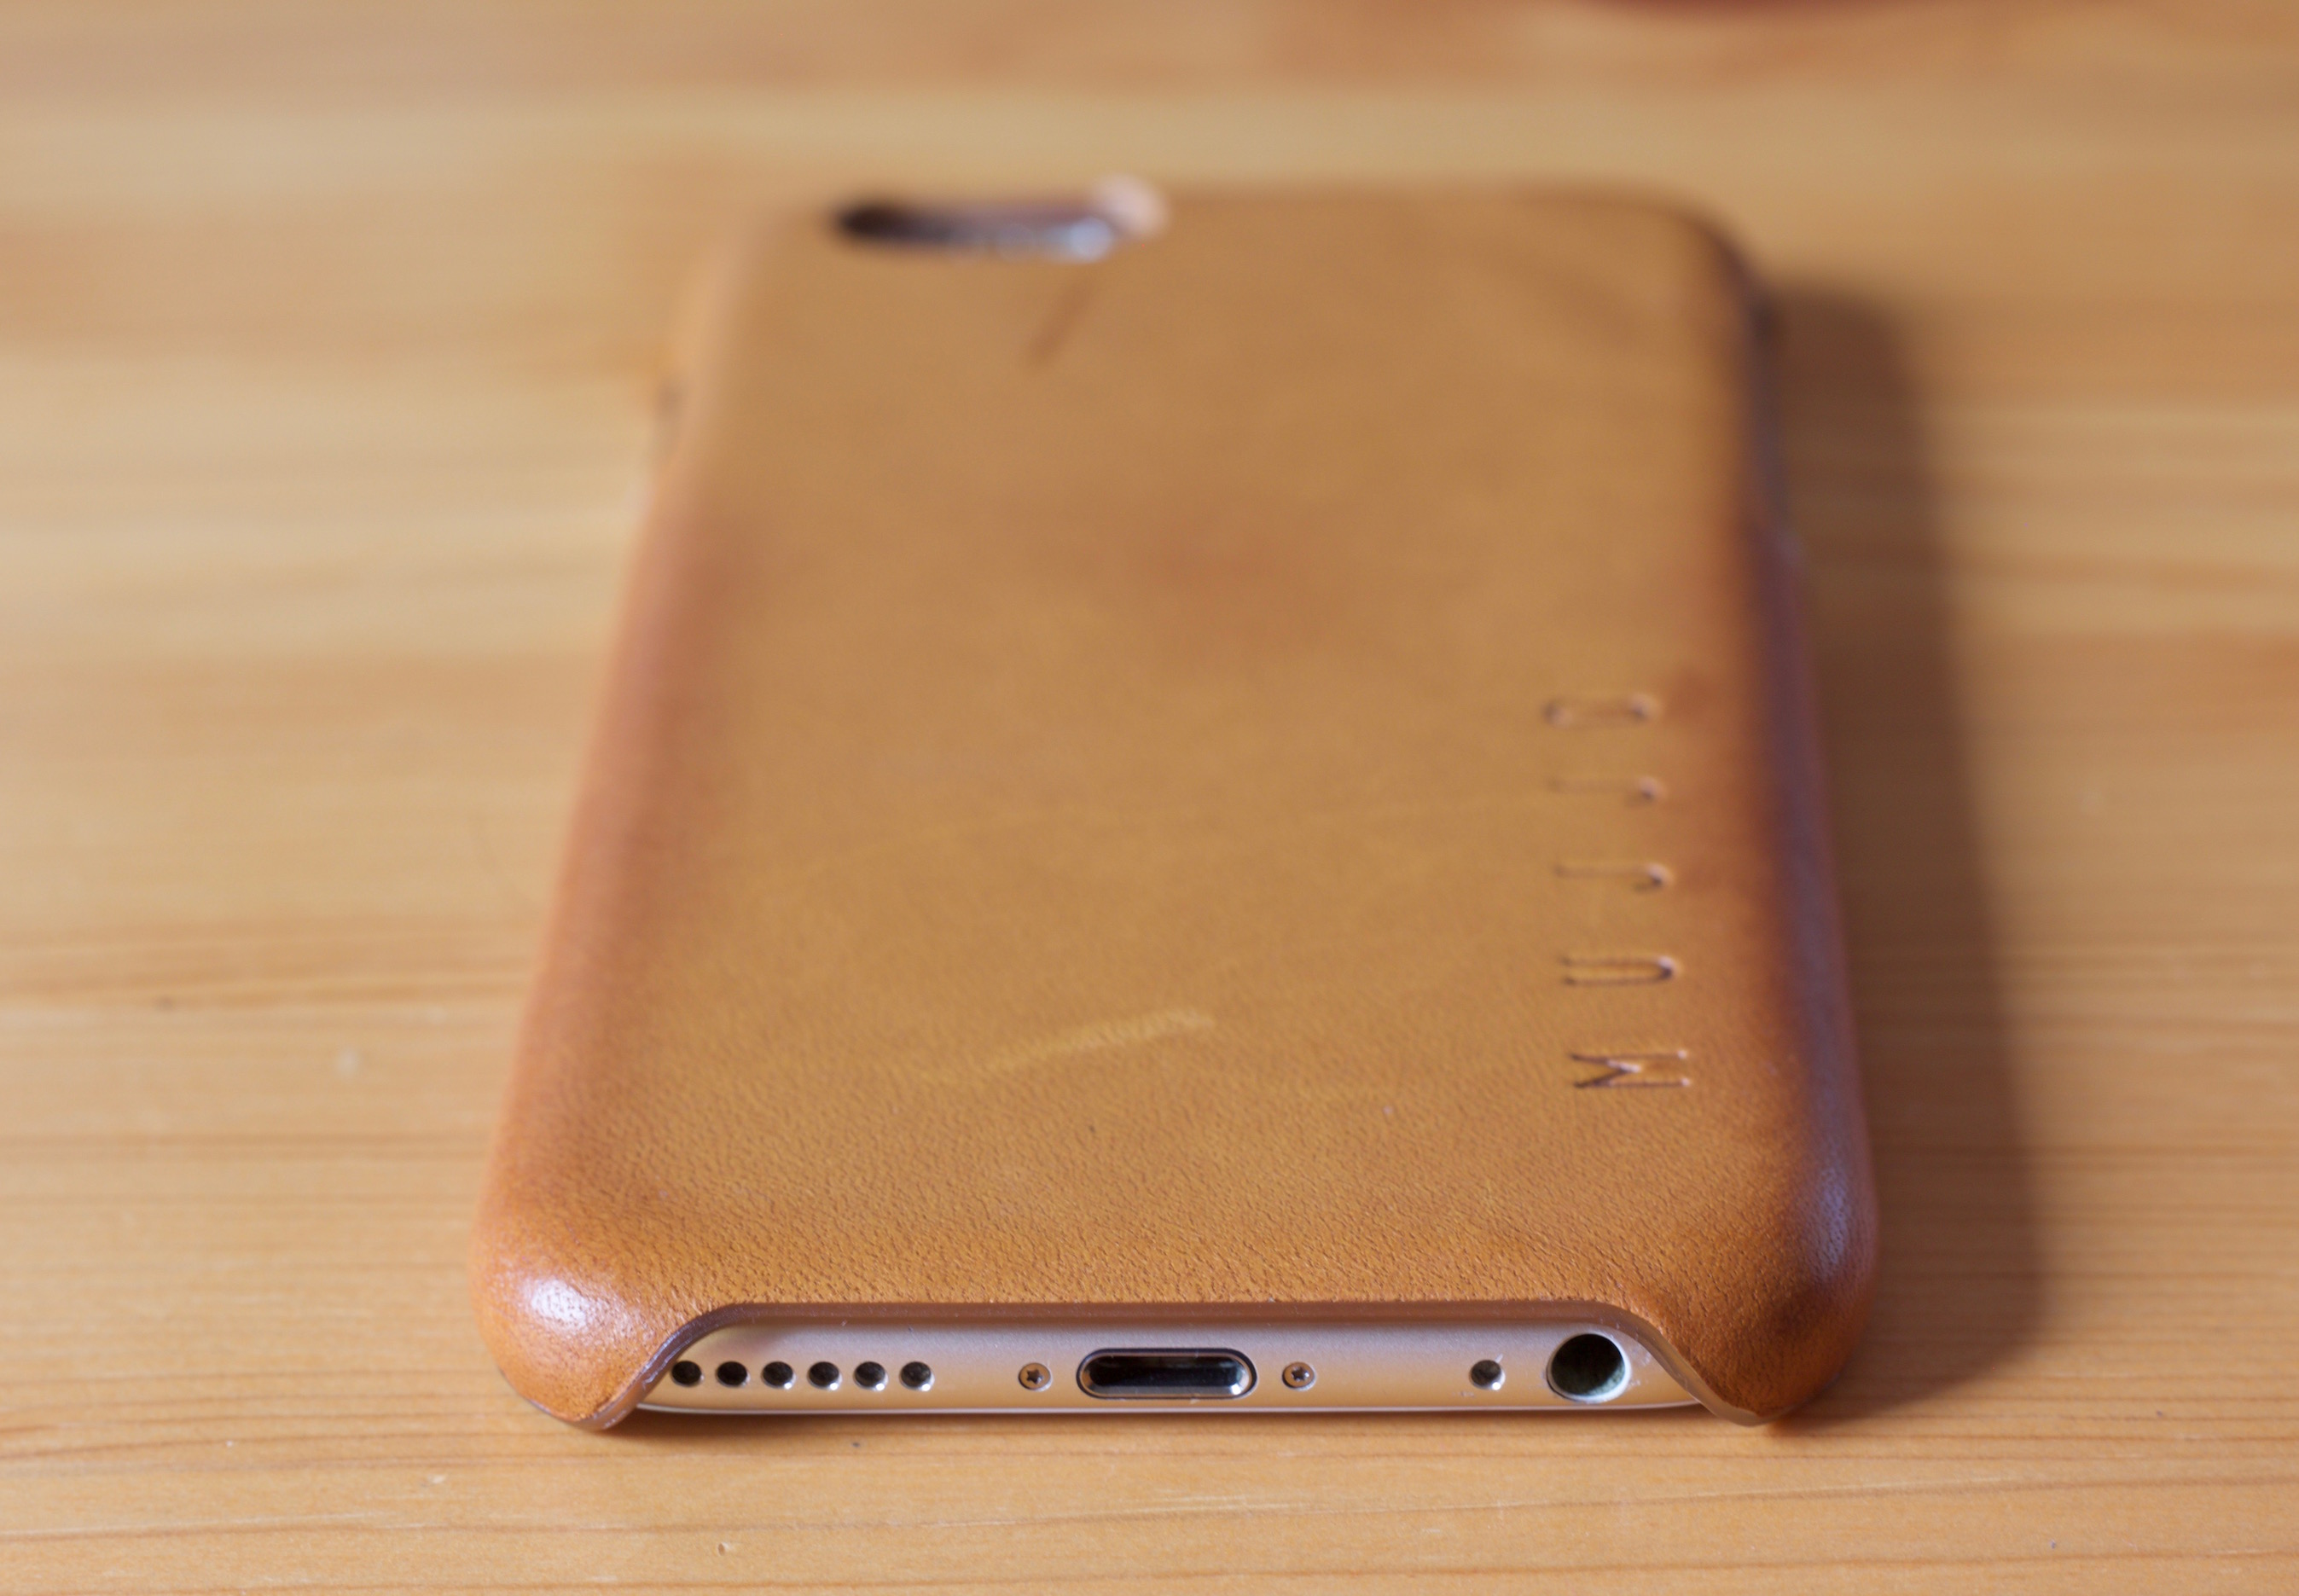 wholesale dealer c0d33 91501 Review: Mujjo Leather Case for iPhone 6 & 6s - 9to5Mac